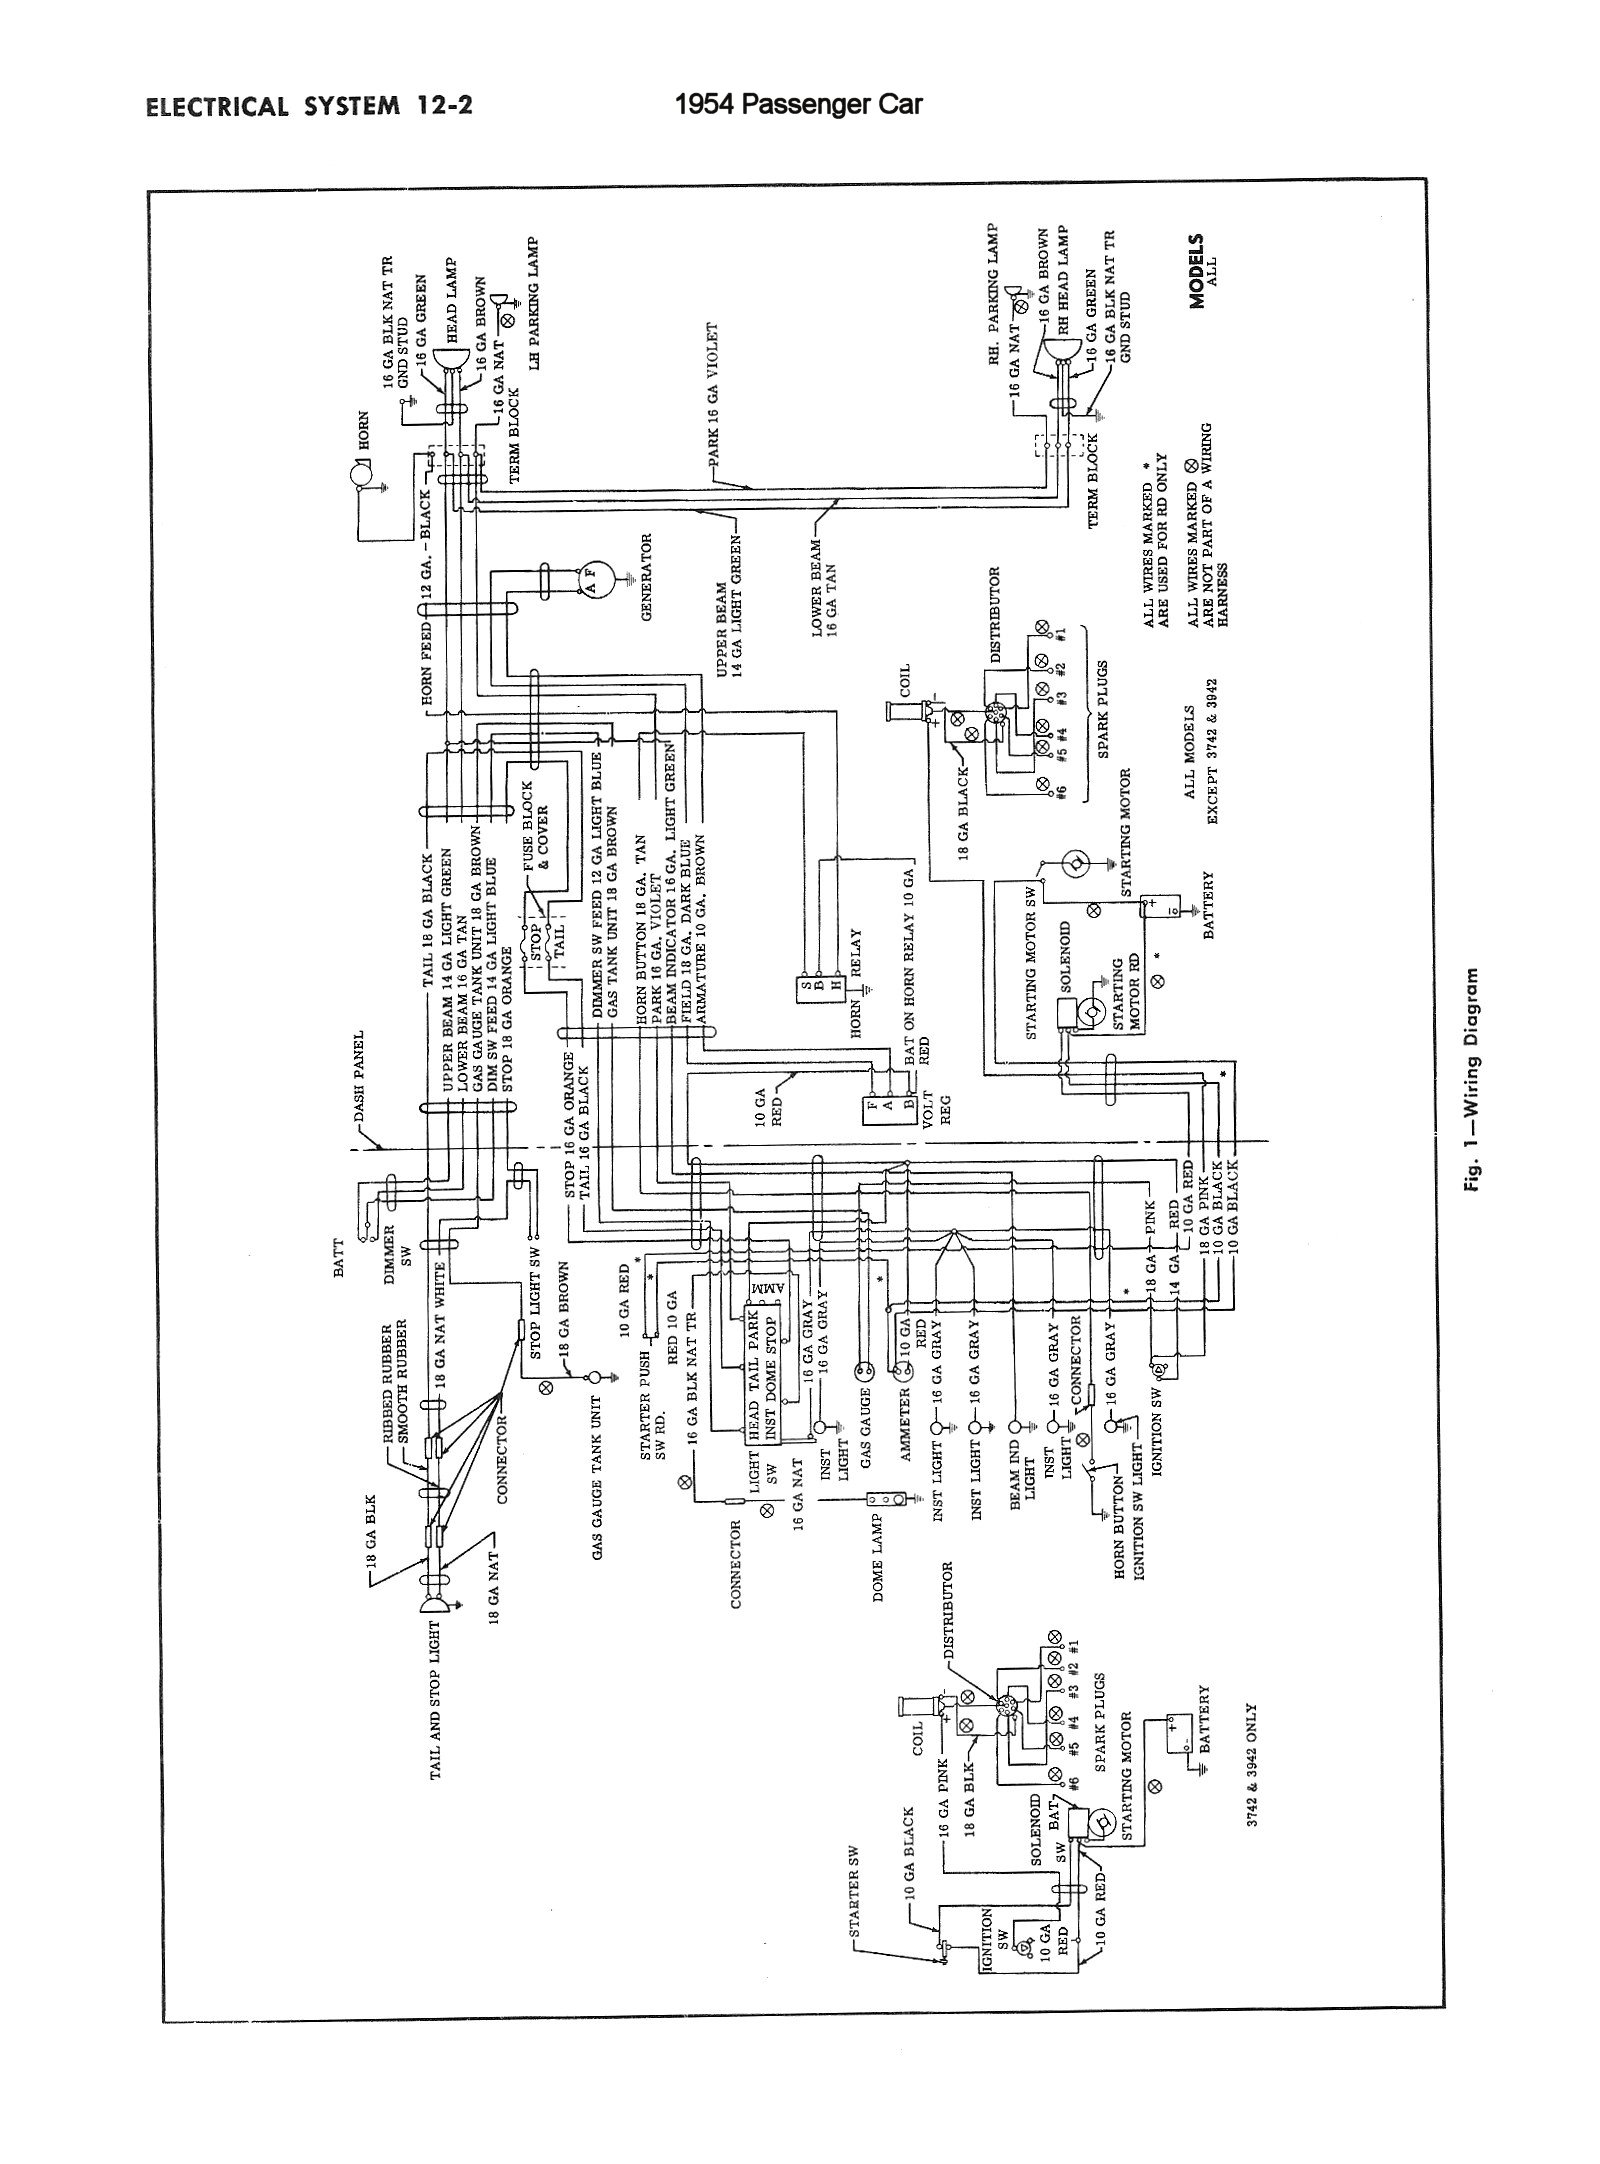 54ctsm1202 chevy wiring diagrams 66 Chevy Headlight Switch Wiring Diagram at aneh.co